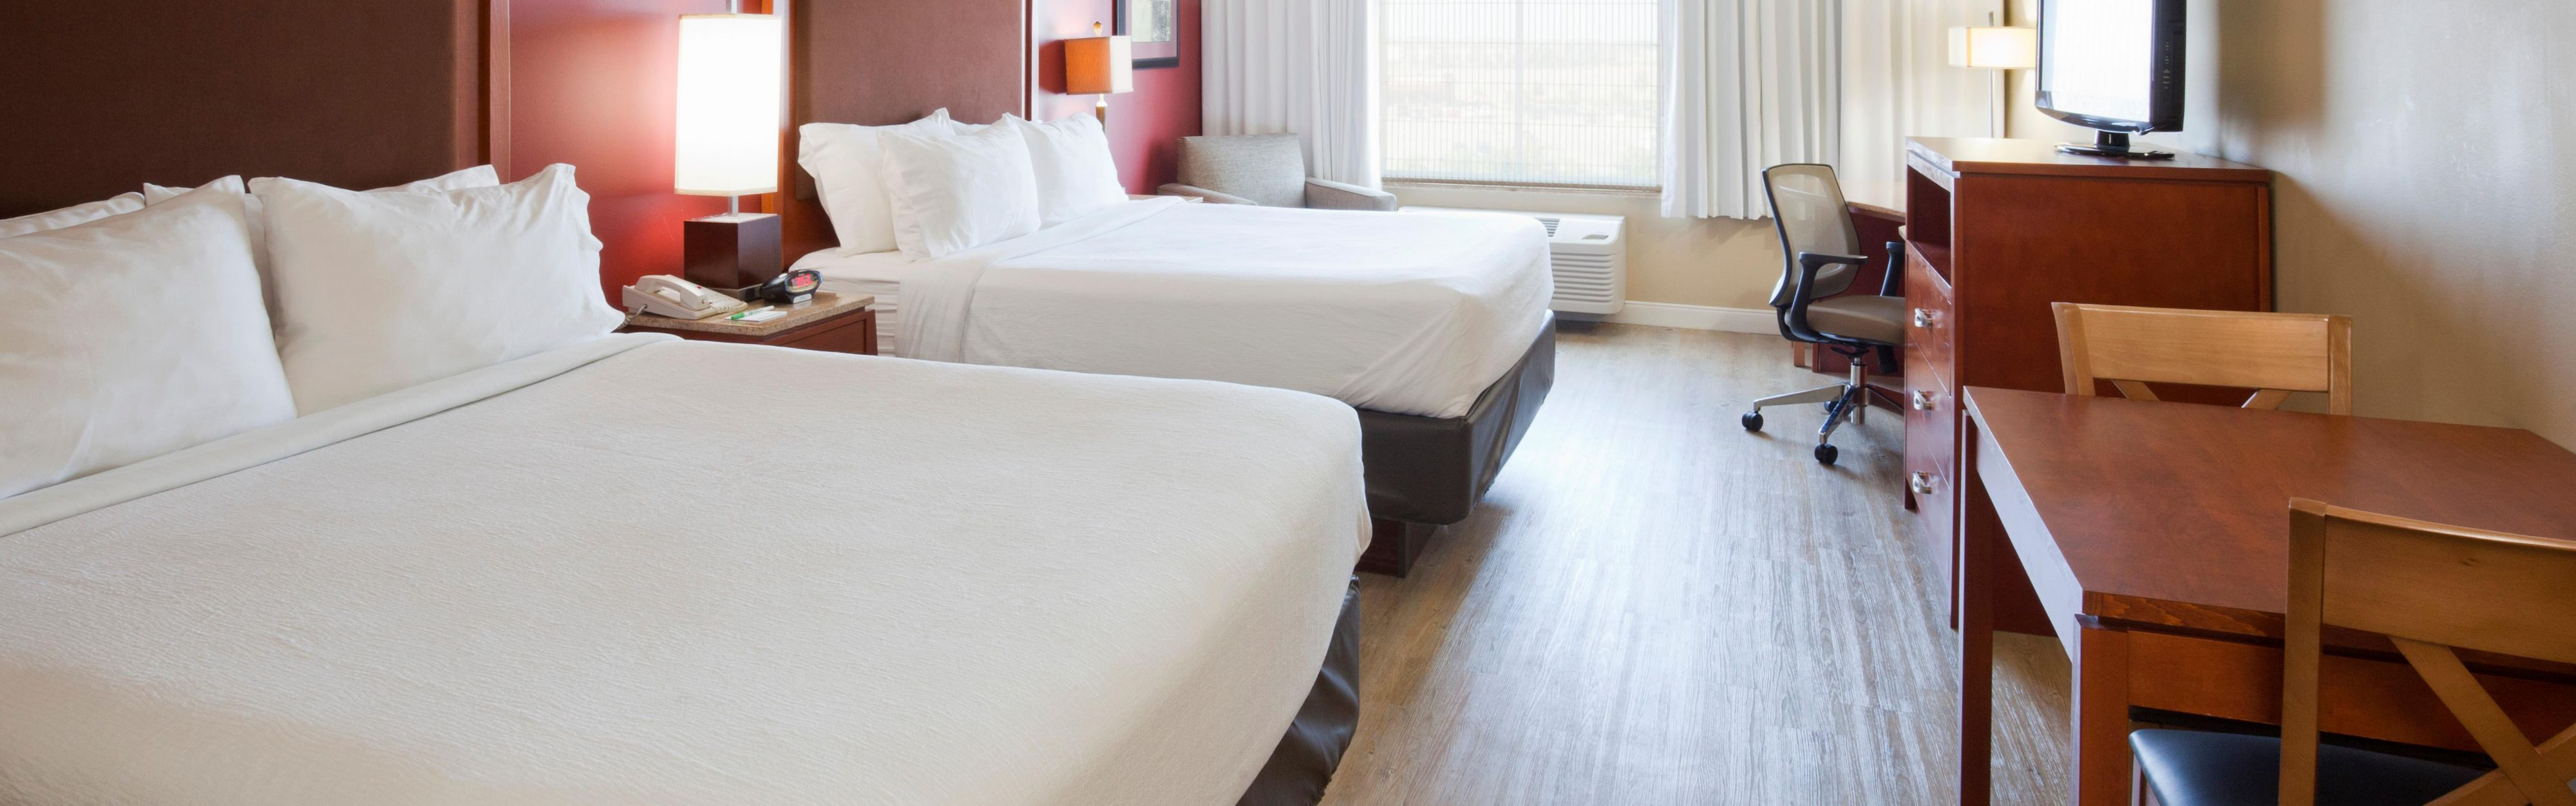 Maple Grove, MN Hotel Room With Two Queen Beds And Free Wi Fi ...